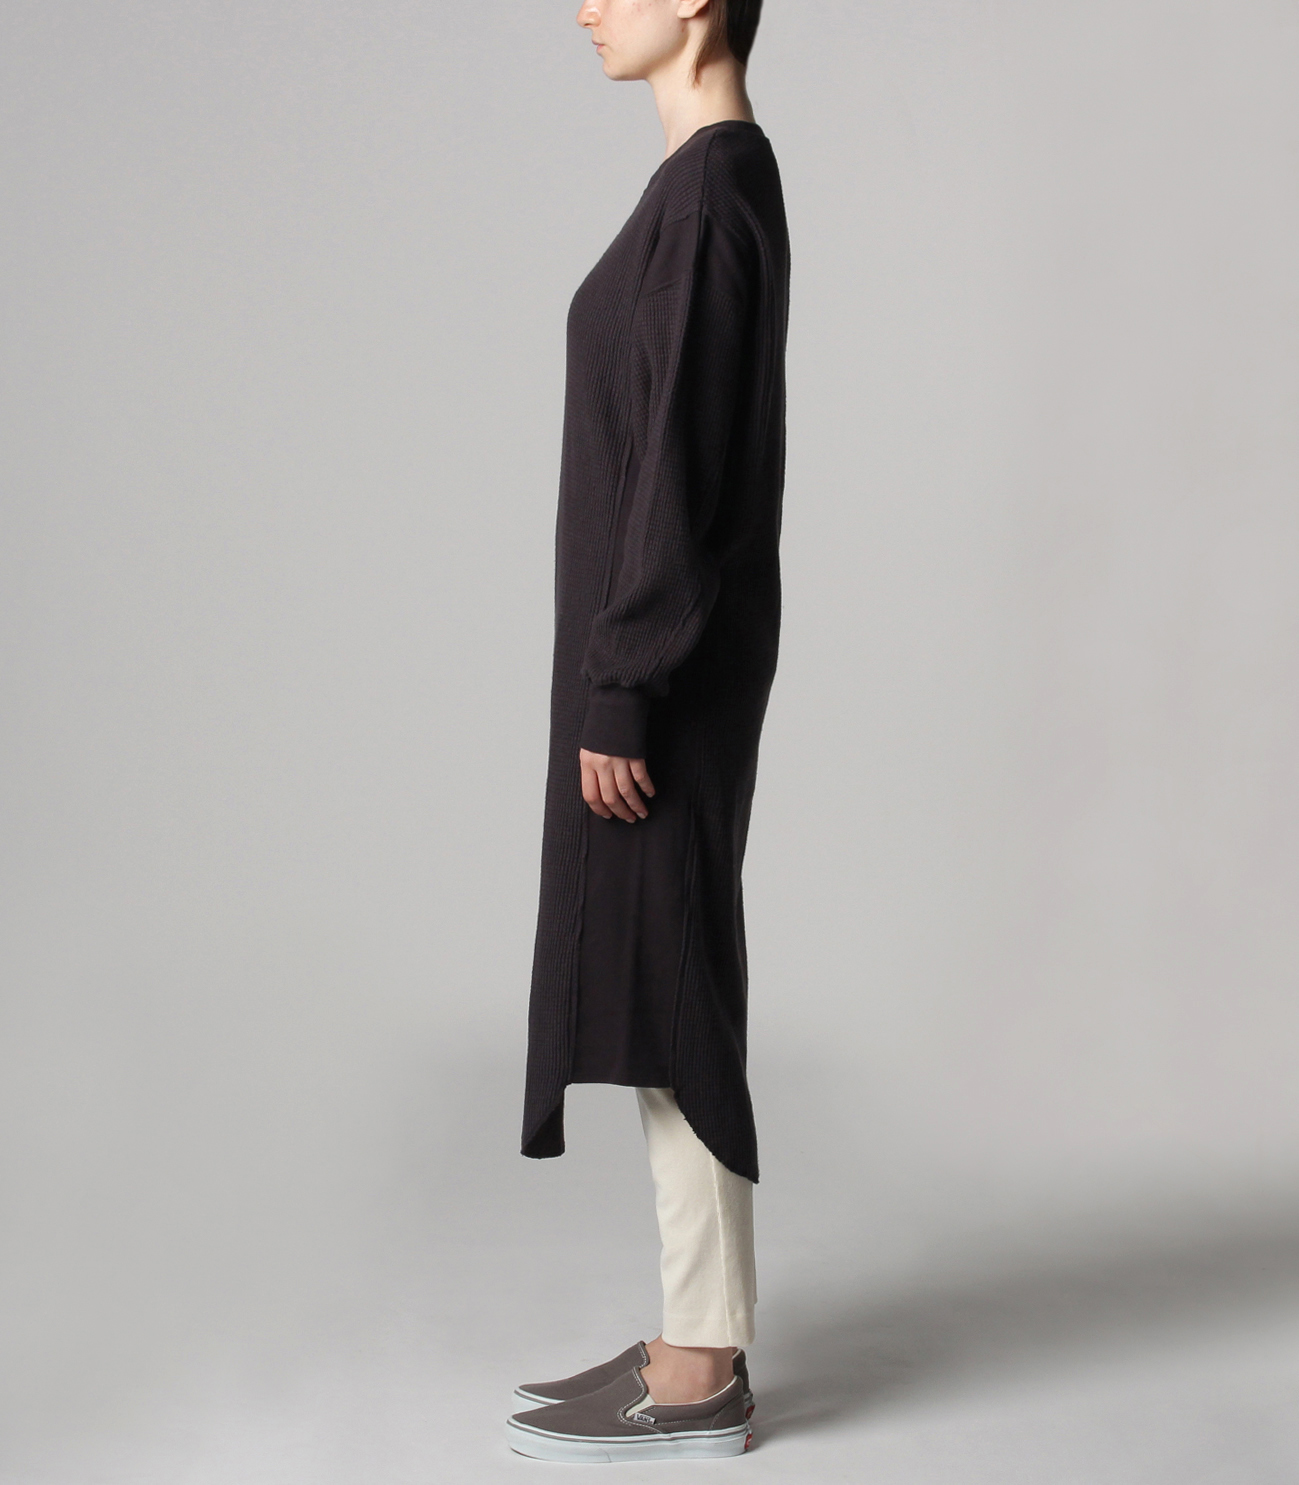 Double brushed waffle l/s dress 詳細画像 black 3